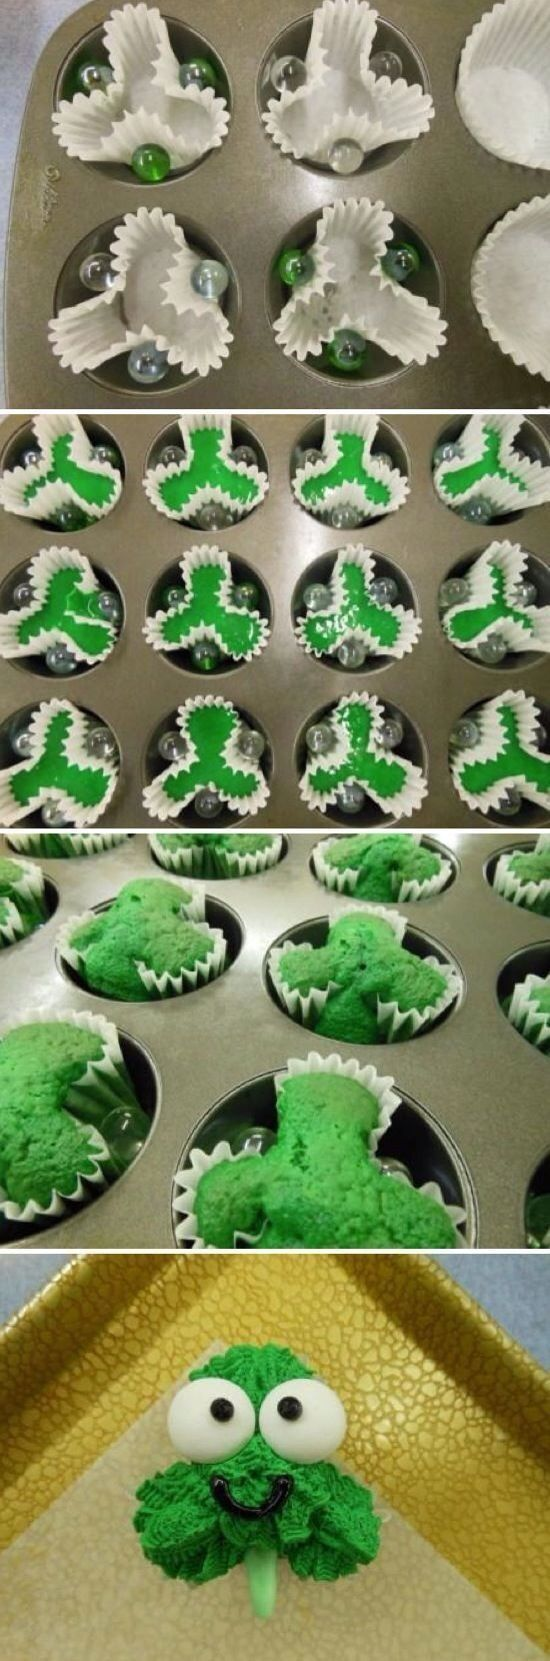 How To Make Shamrock Shaped Cupcakes And A Few Other Creative Ideas For Cupcakes